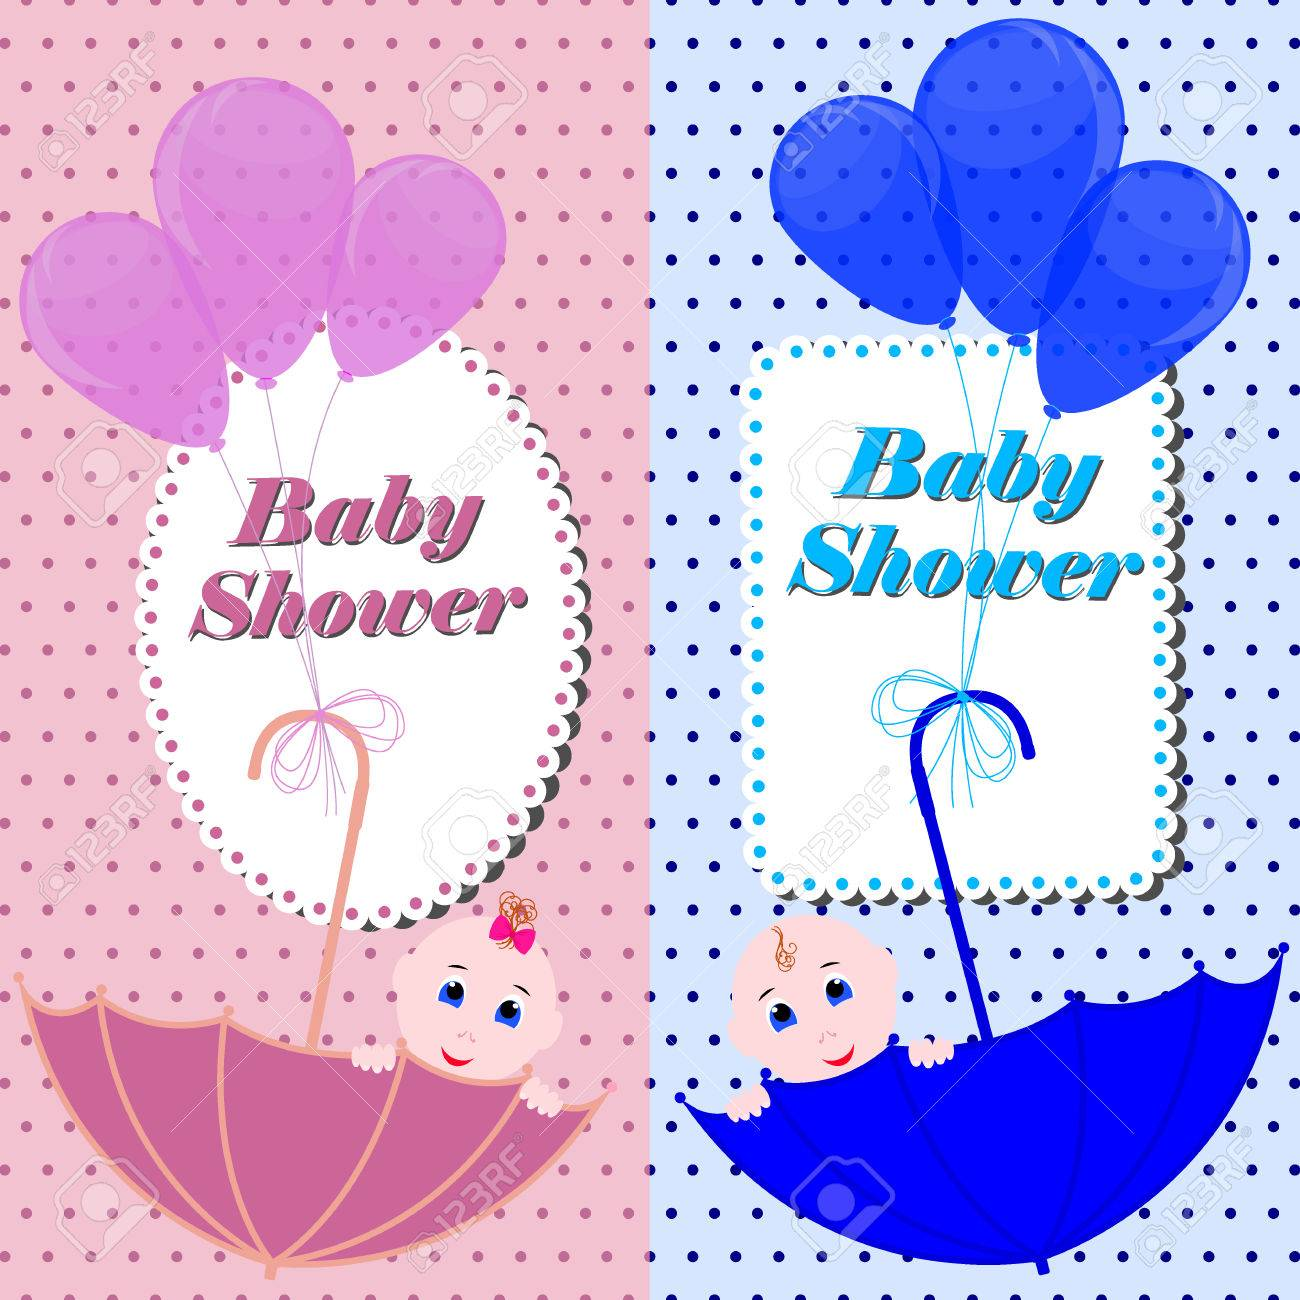 Baby Shower Banner Or Invitation Card Cute Boy And Girl Sitting